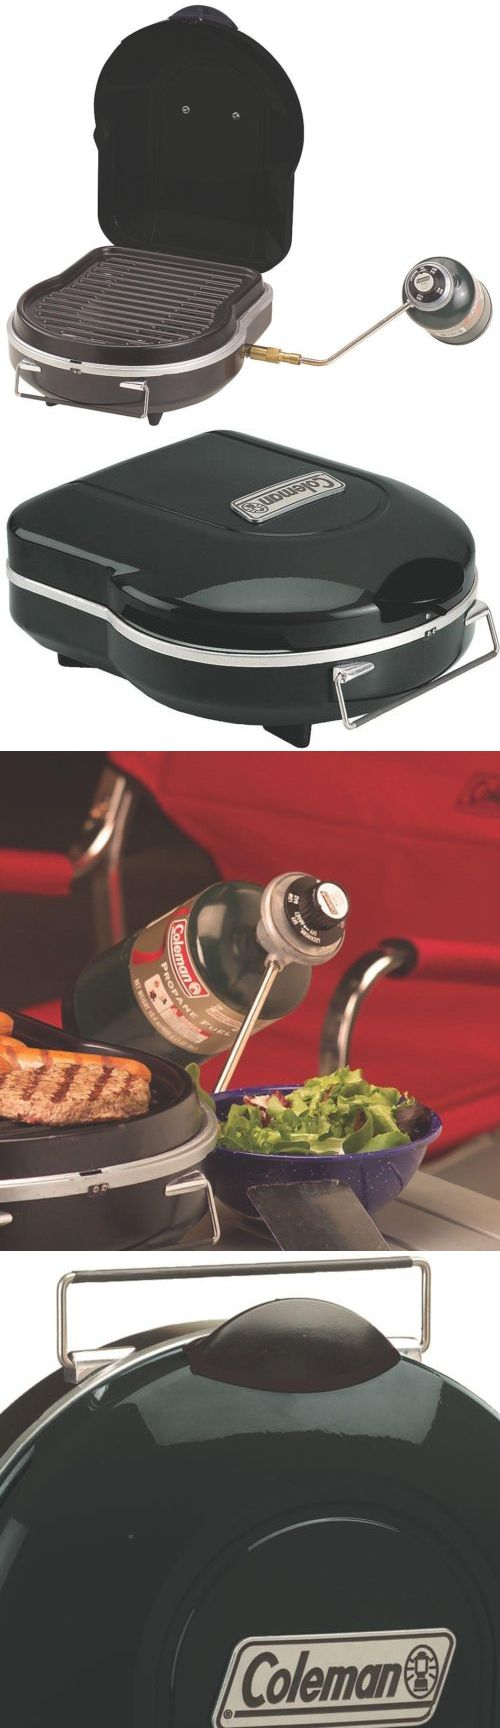 Top 25+ best Coleman propane stove ideas on Pinterest | Coleman ...